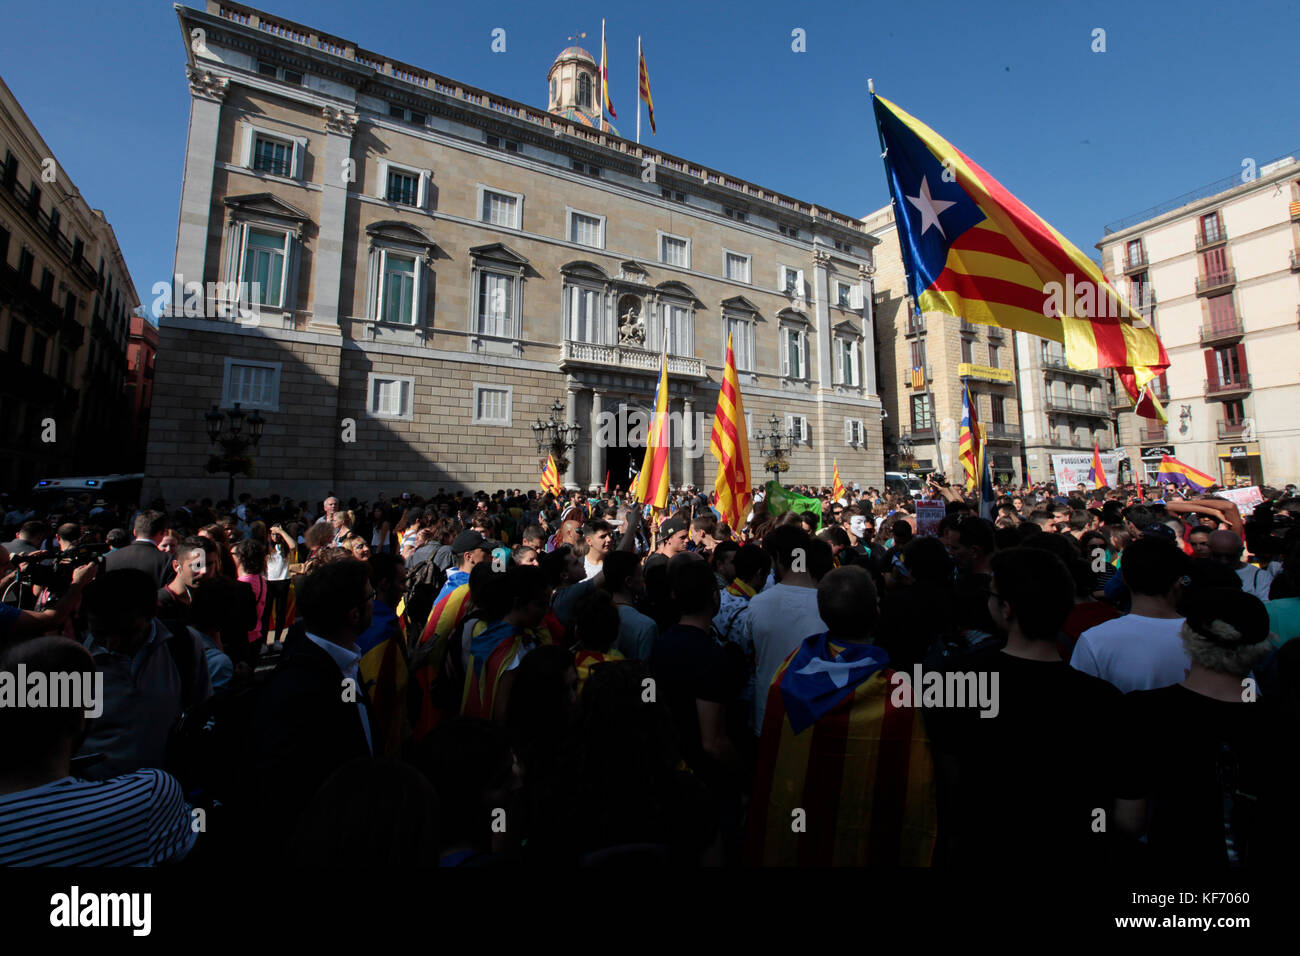 Barcelona, Spain. 26th October, 2017.   President of Catalonia, Carles Puigdemont, gives a speech at the Palau de - Stock Image